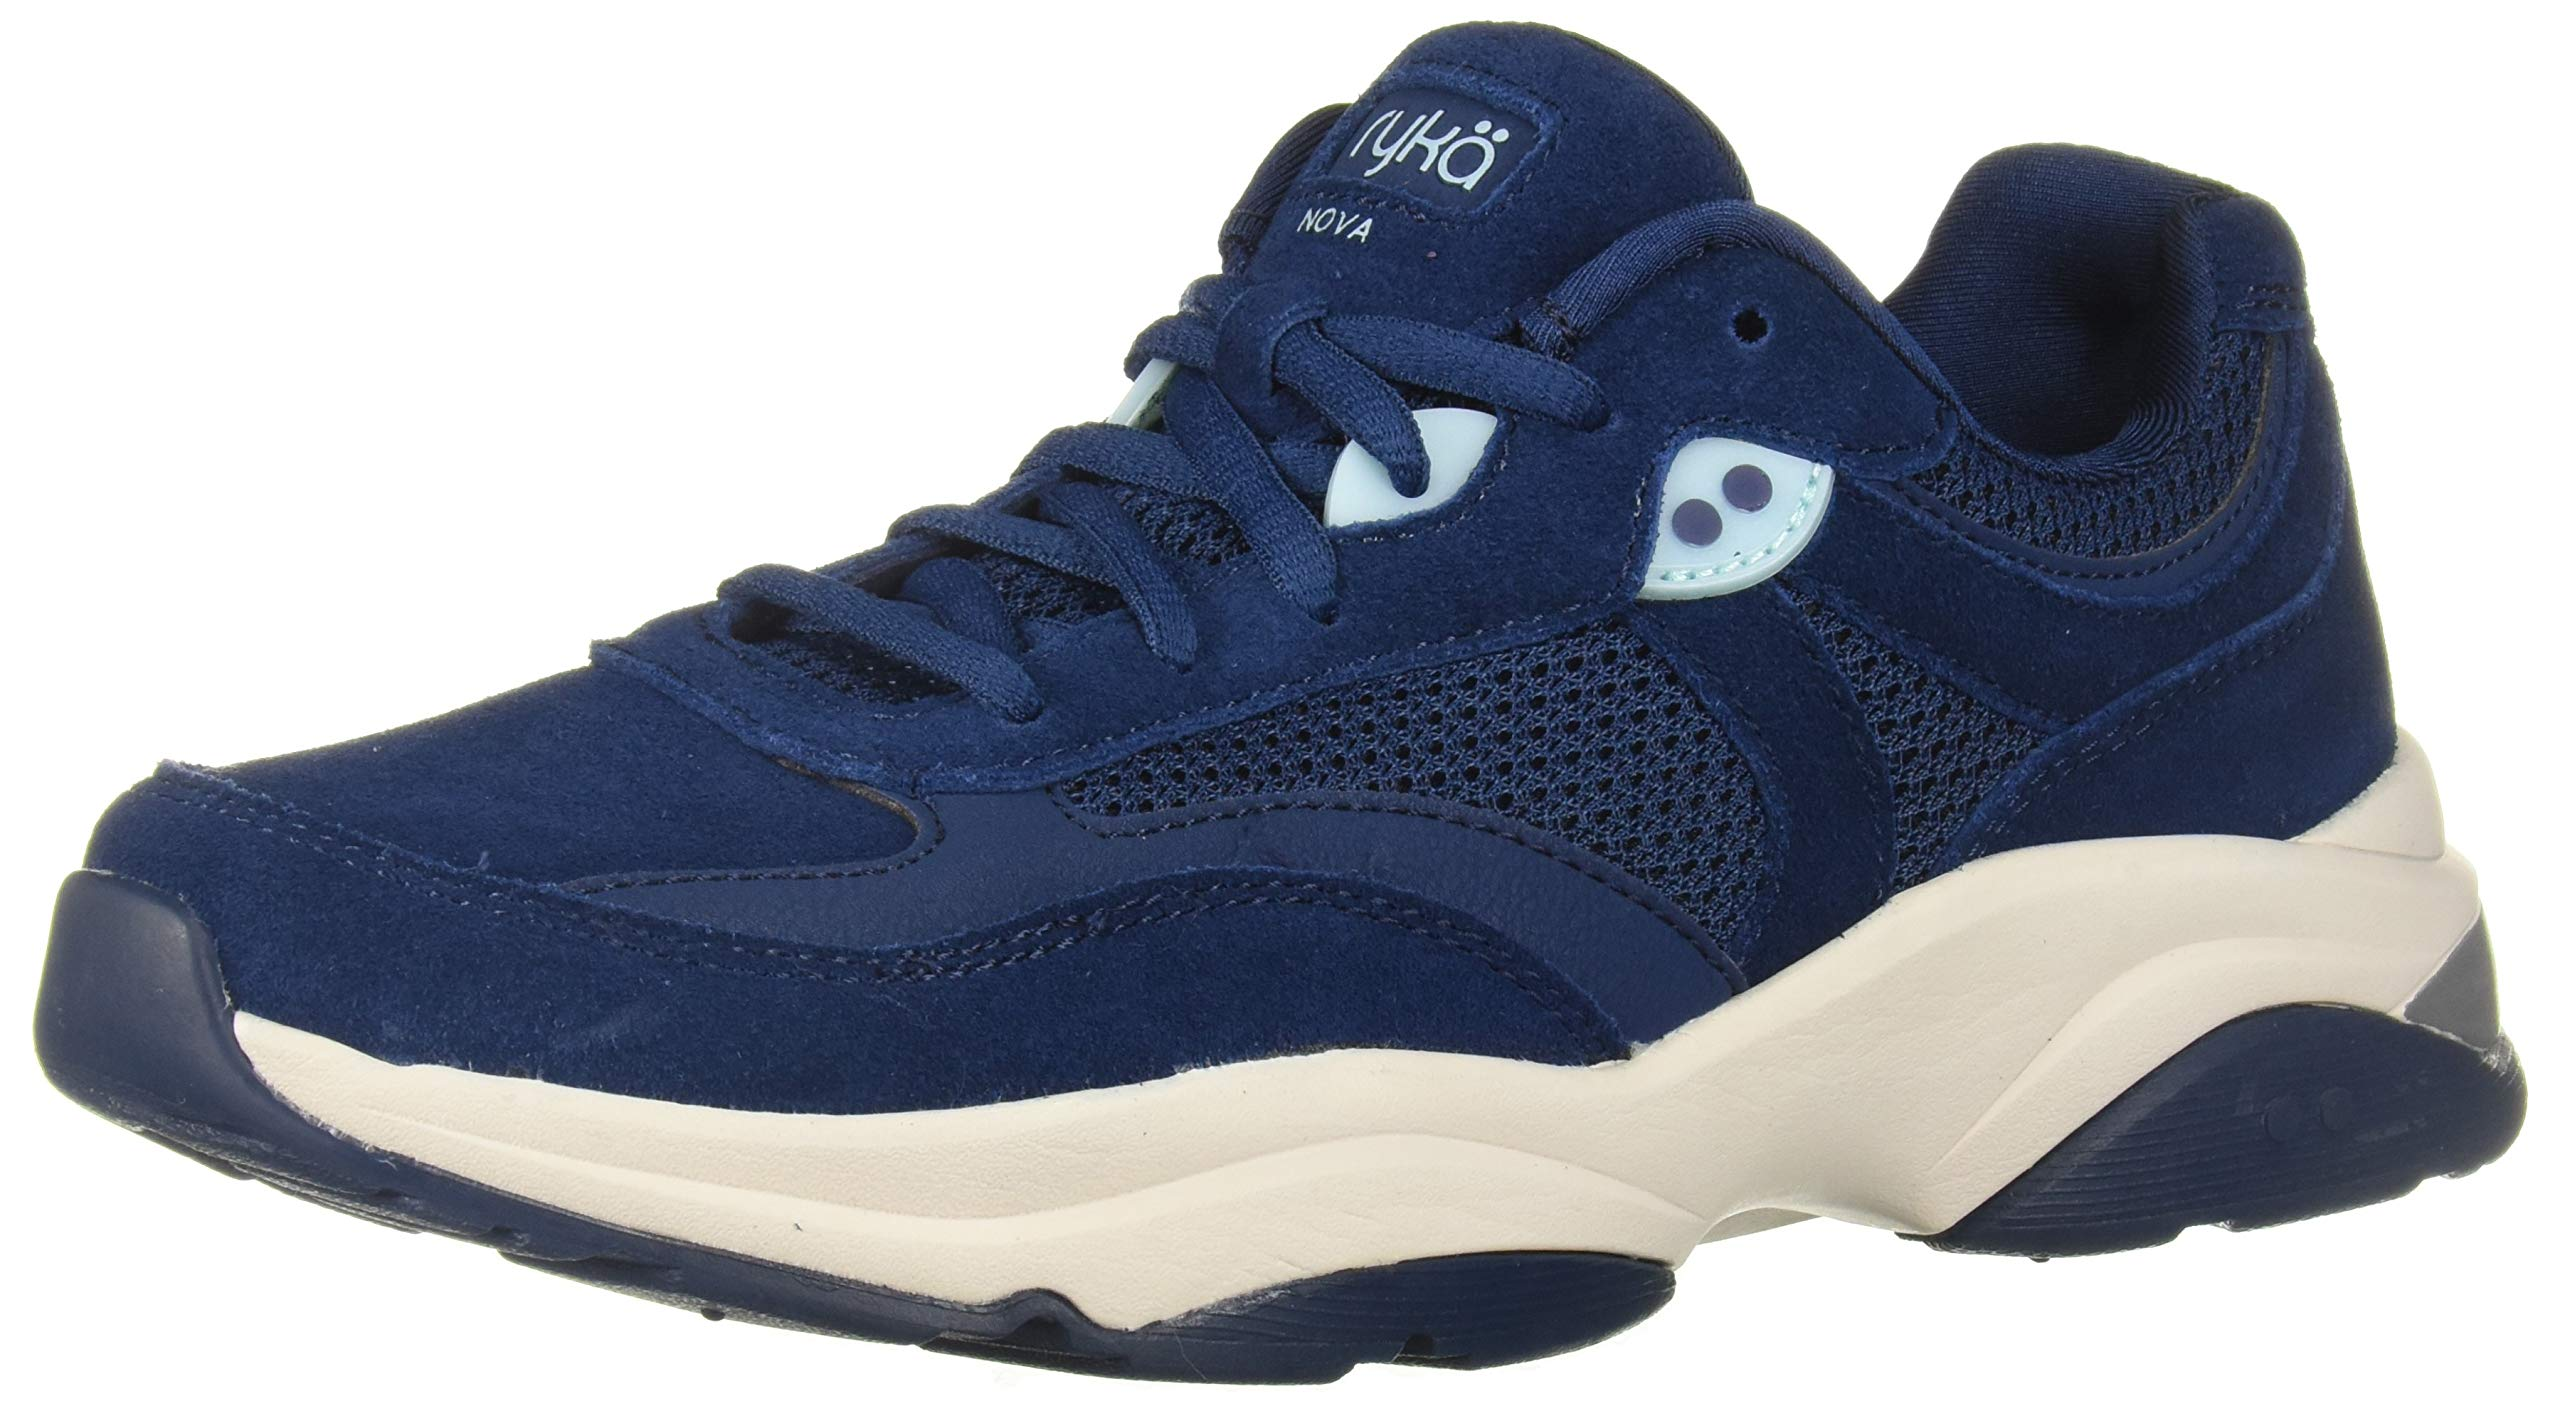 Ryka Women's NOVA Walking Shoe, Navy, 7 W US by Ryka